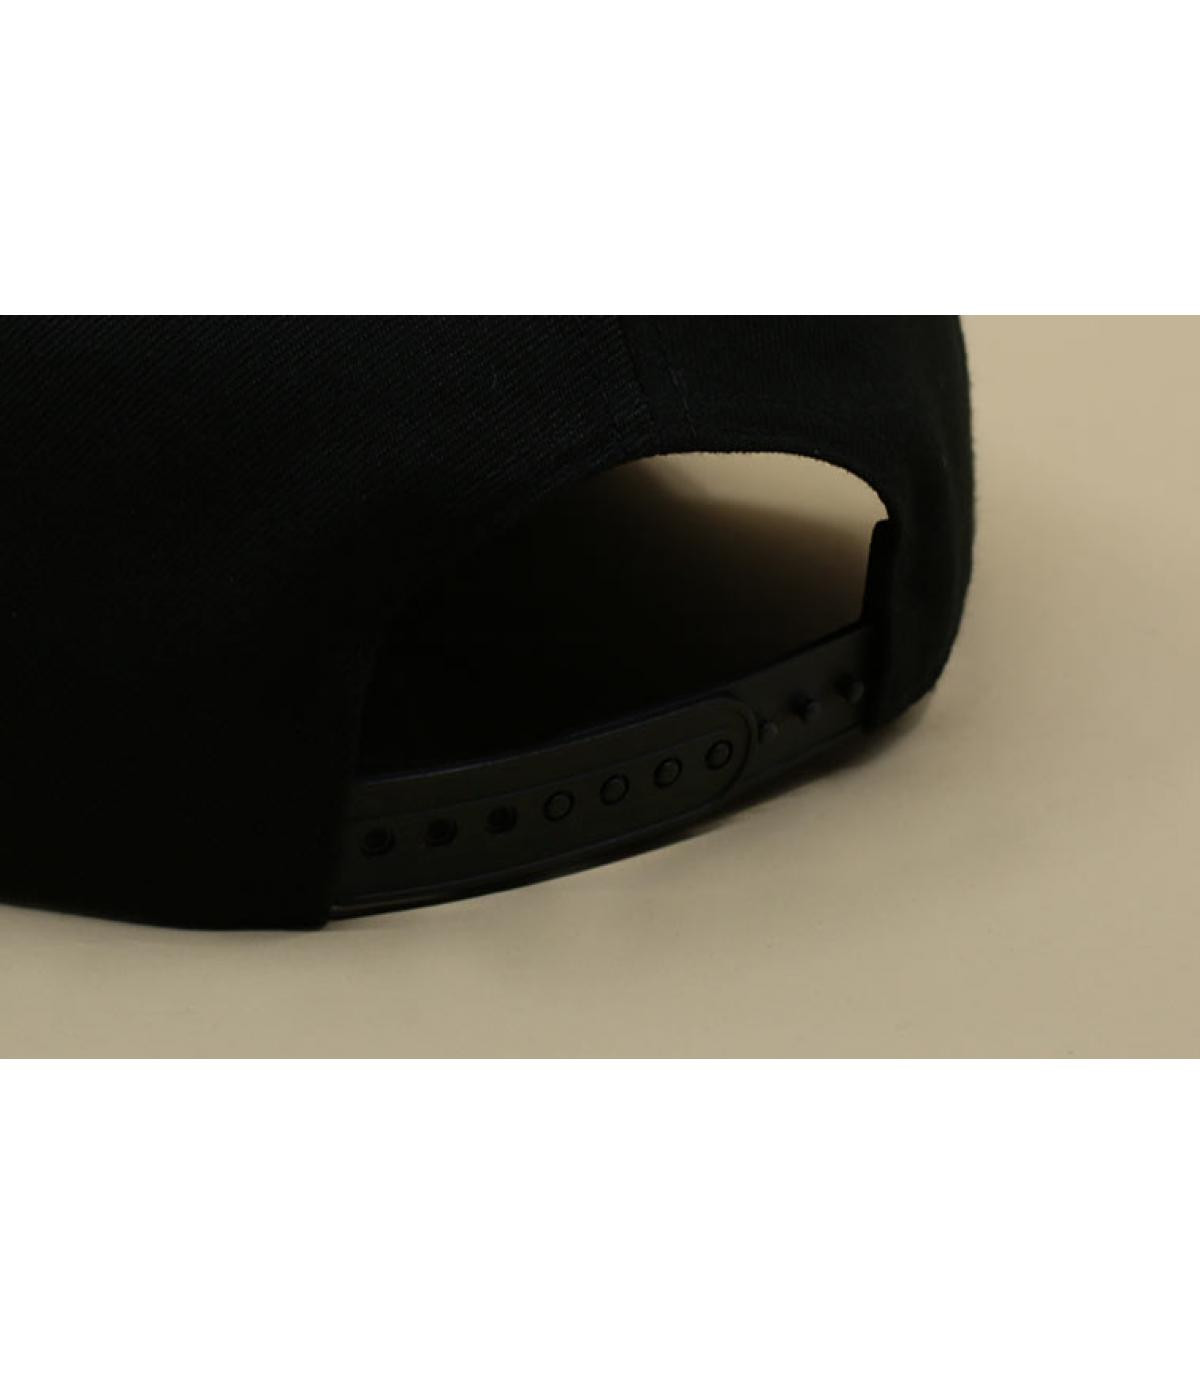 Détails Snapback Call of Duty MW - image 4